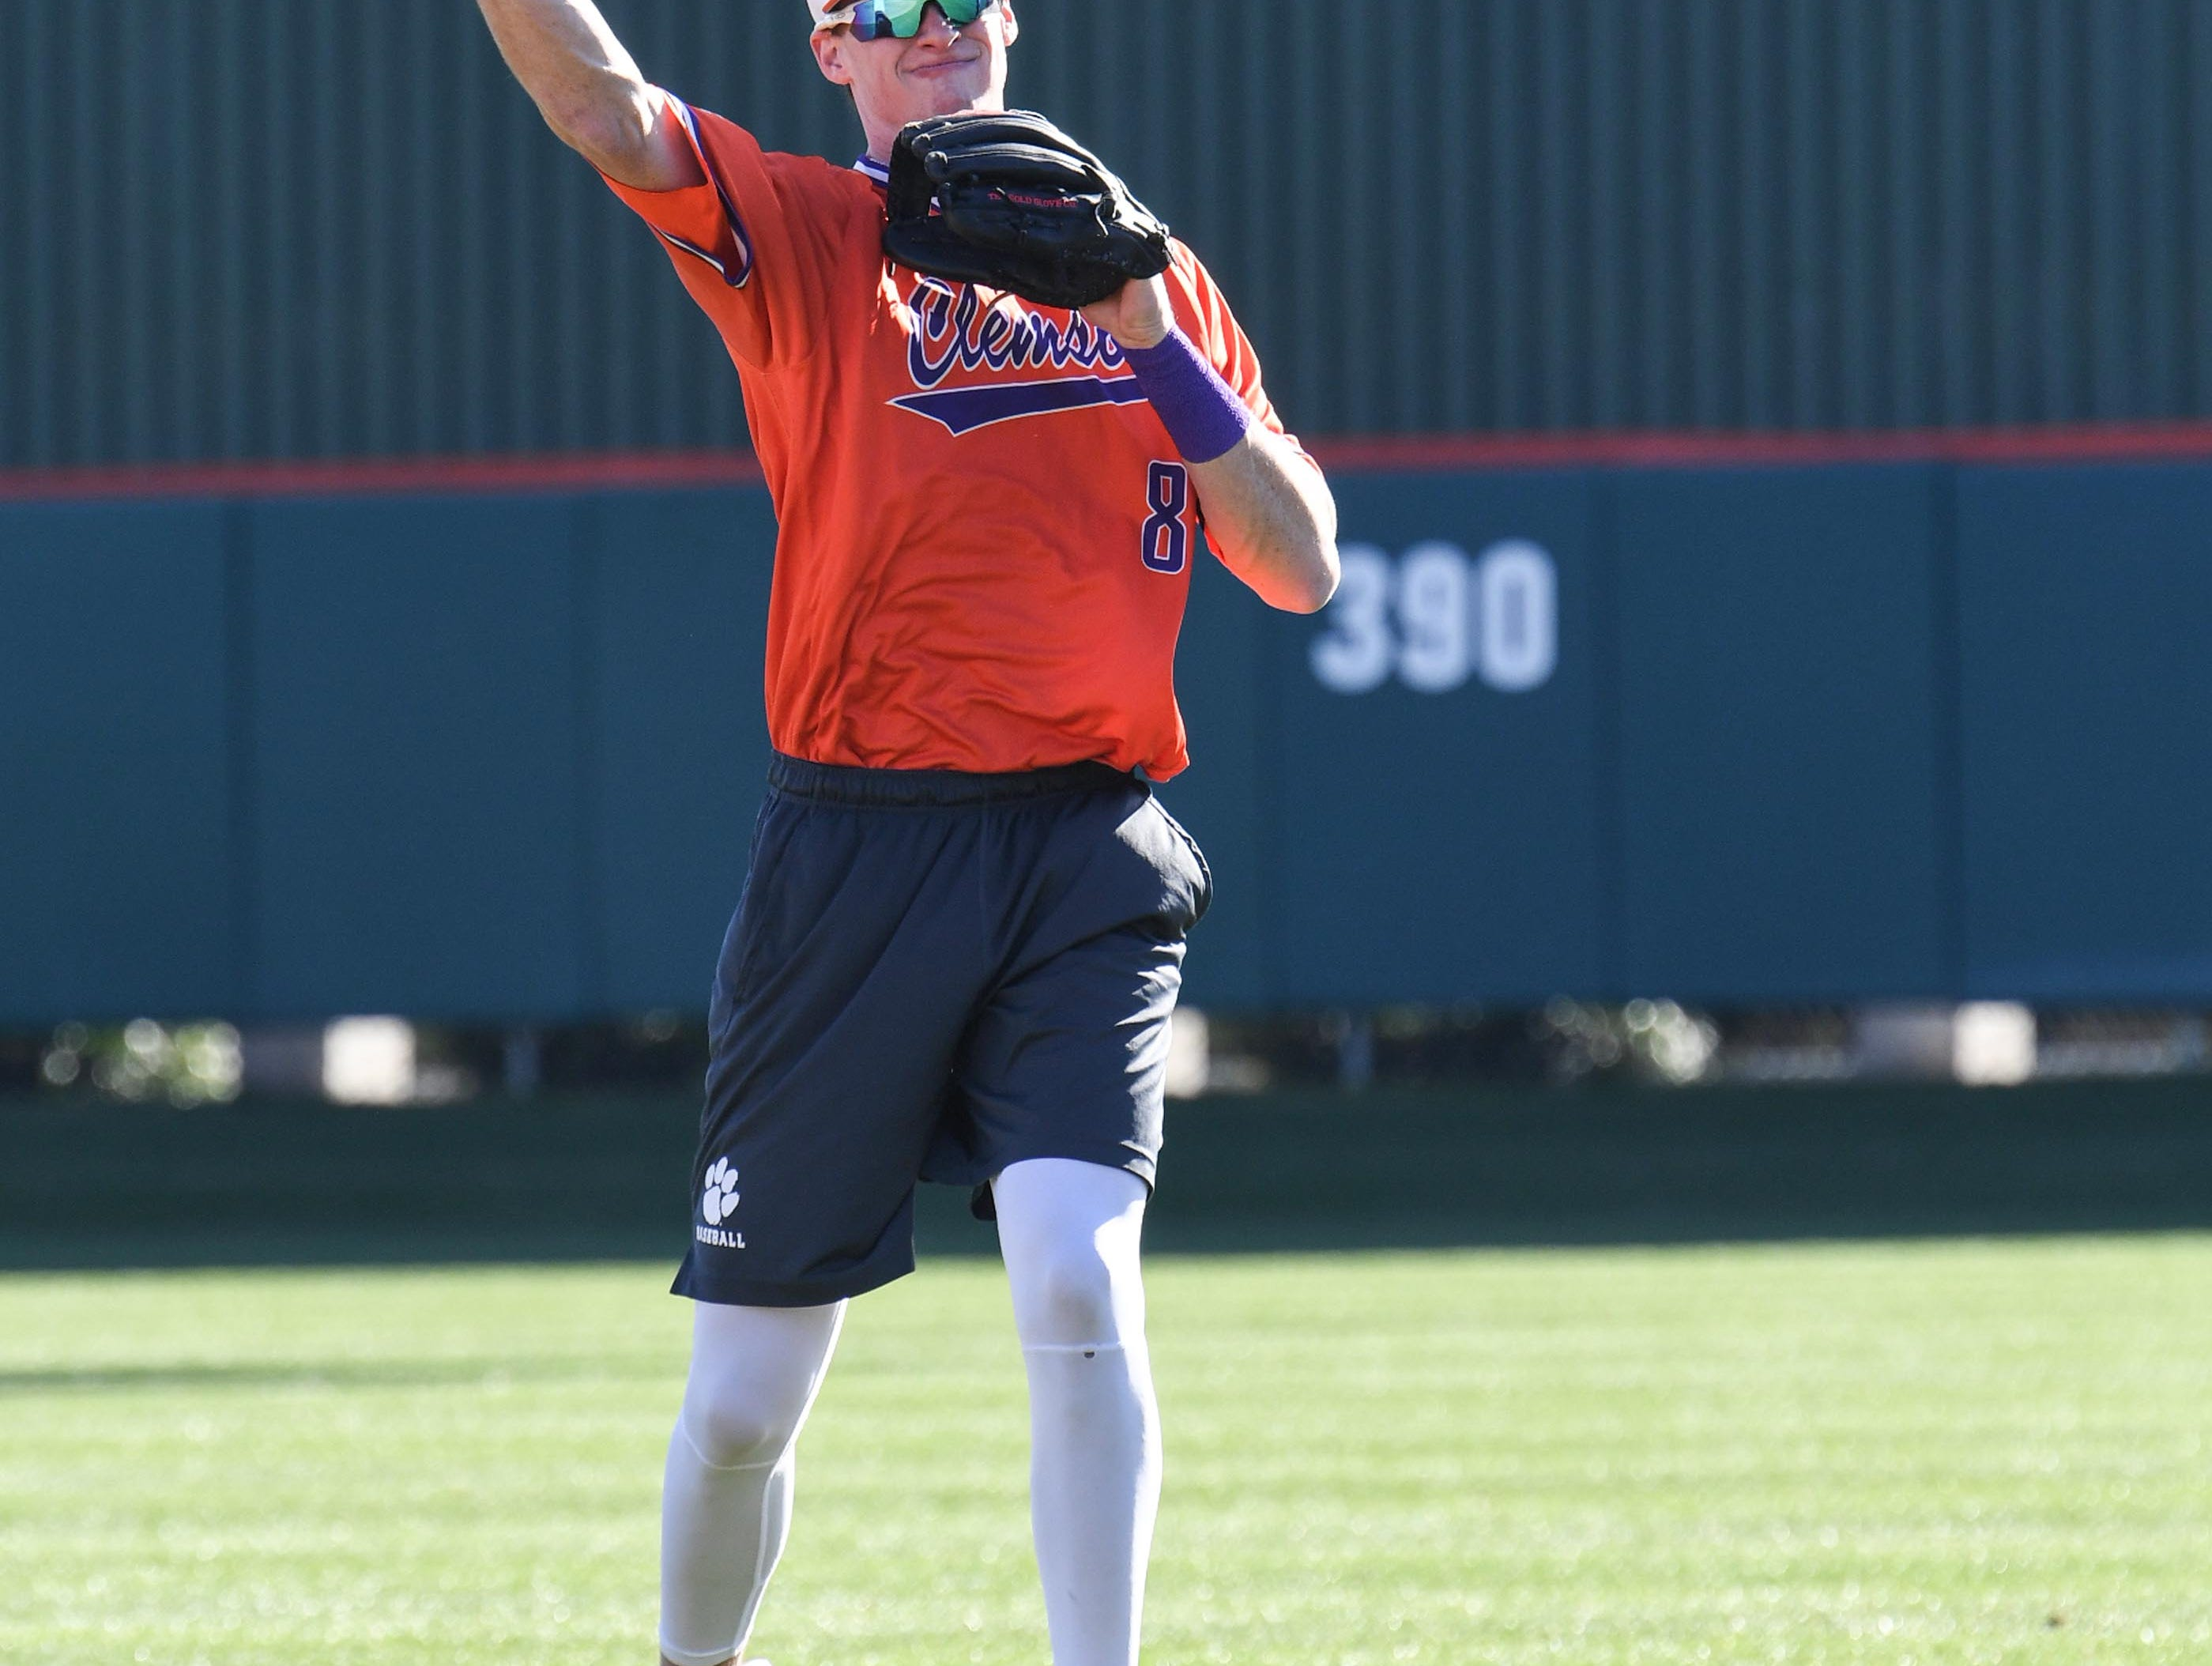 Clemson shortstop Logan Davidson (8) warms up with teammates during practice at Doug Kingsmore Stadium in Clemson Friday.